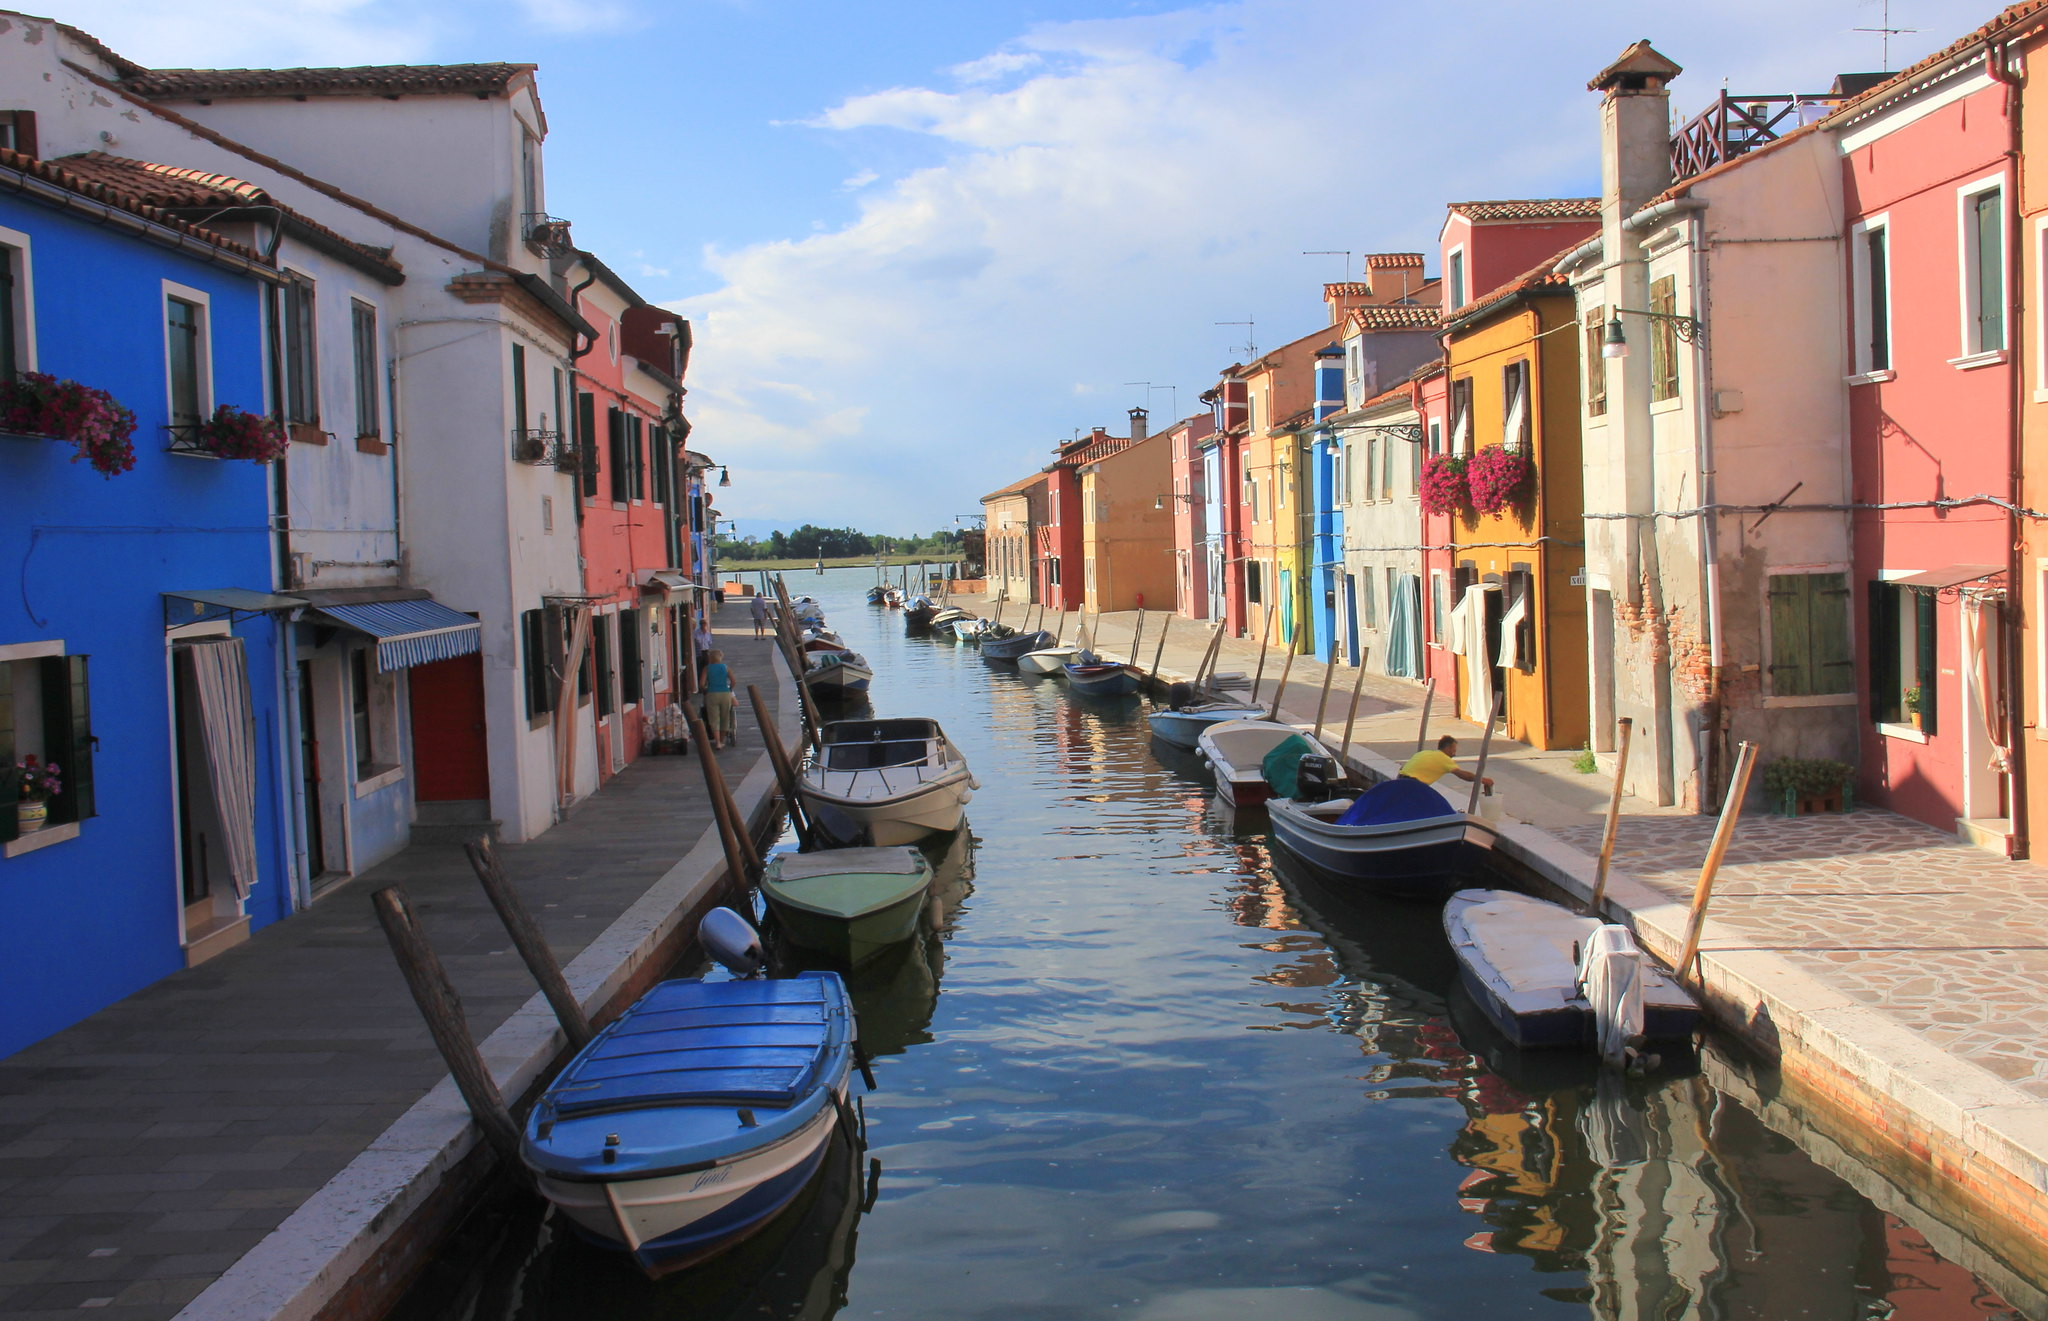 Colourful houses of Burano reflecting on the canals